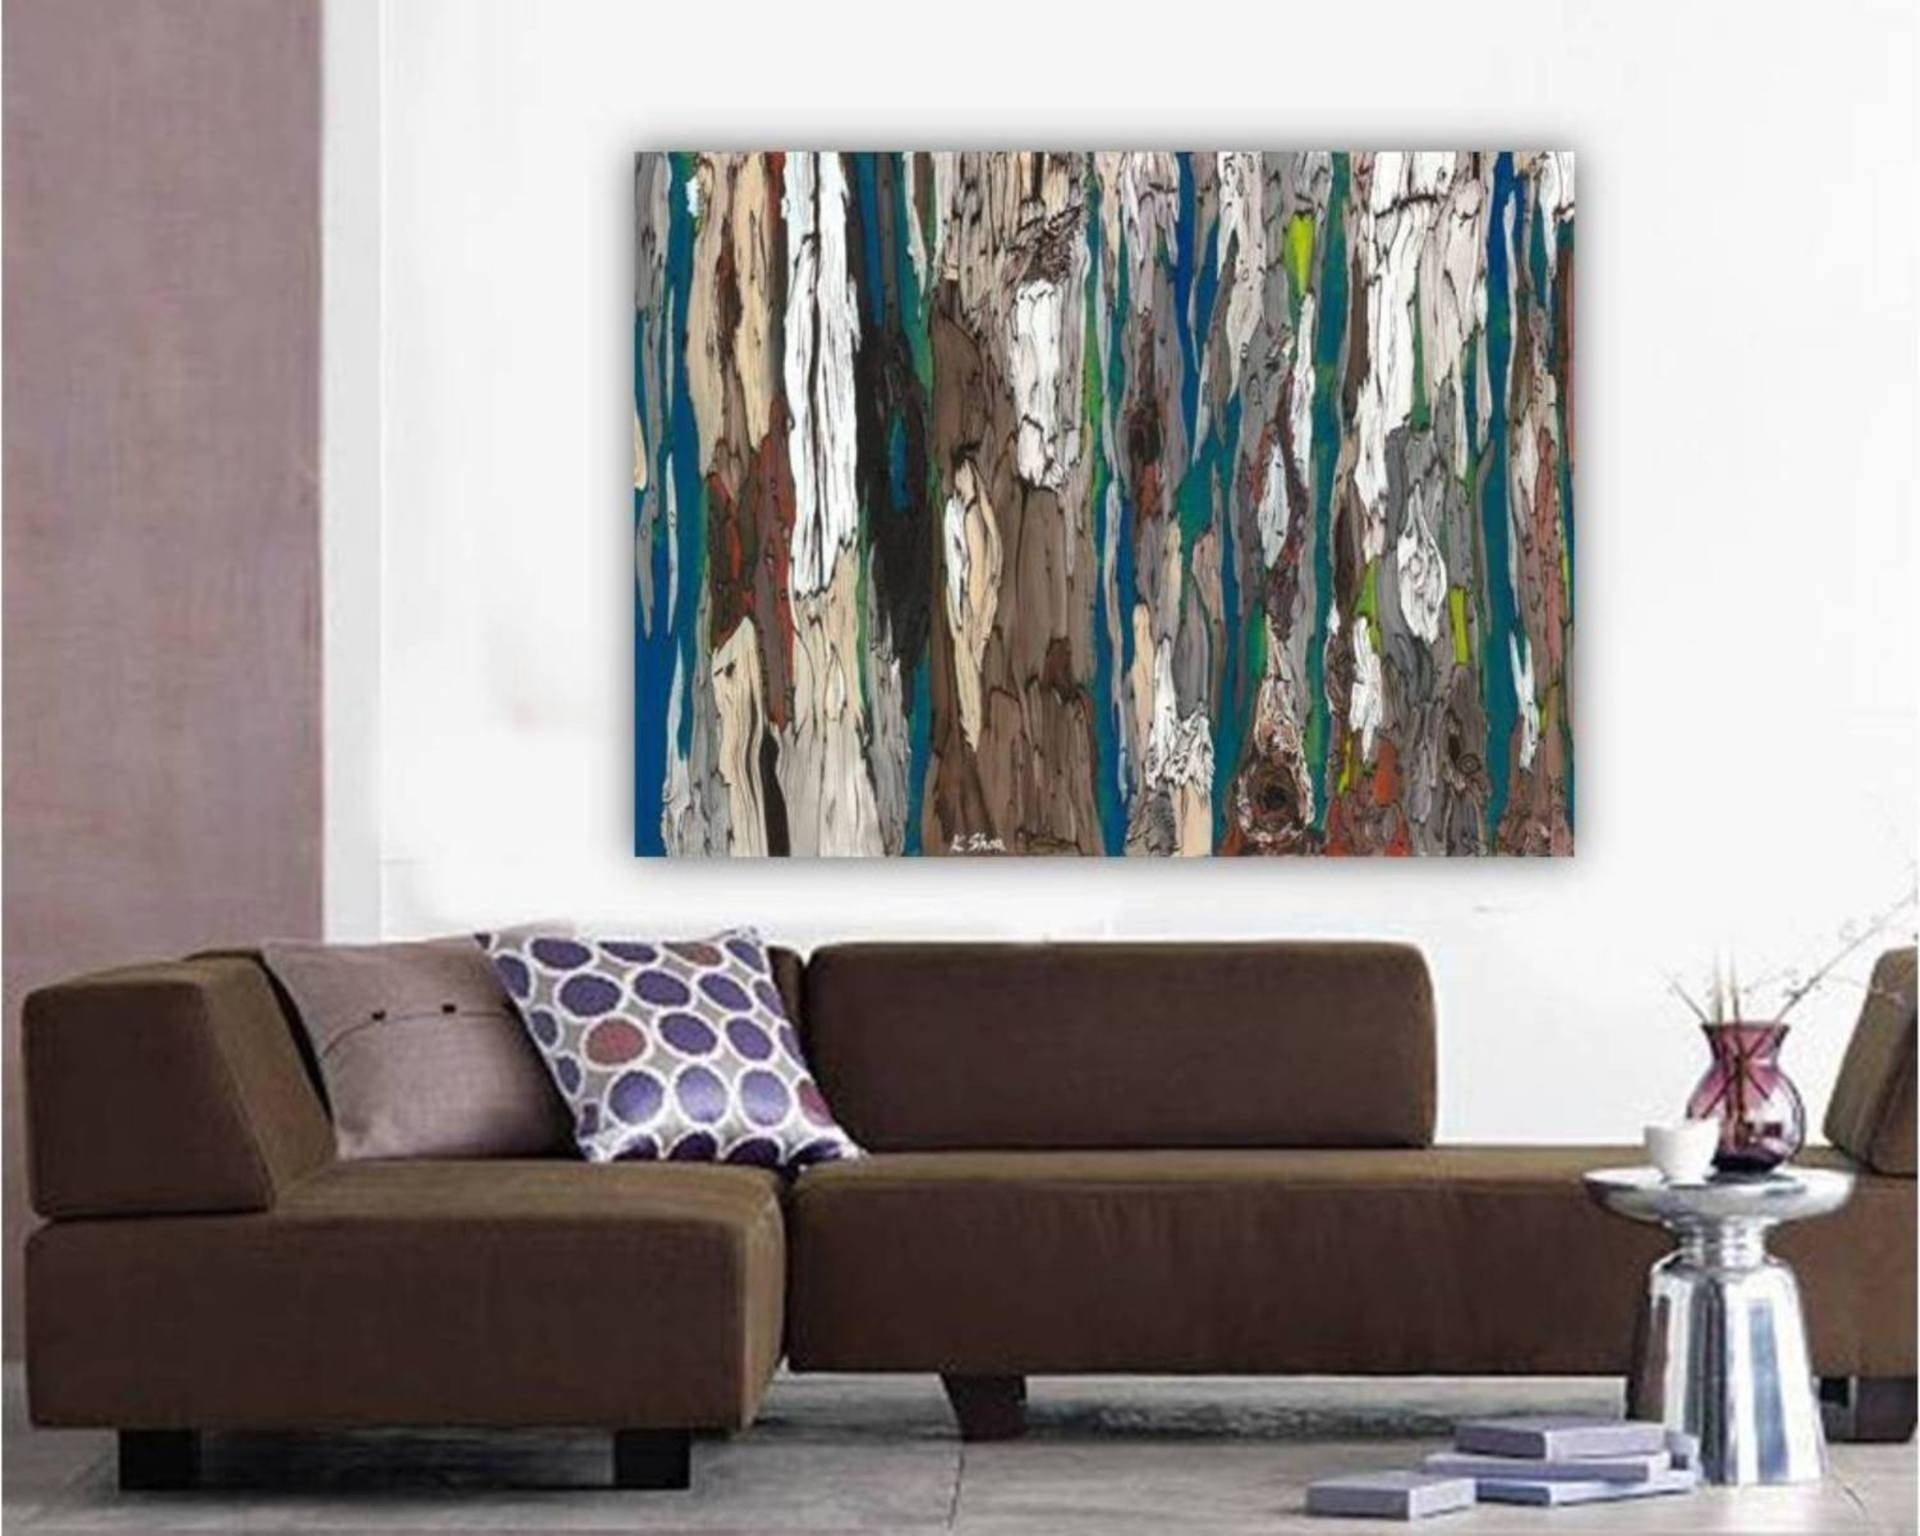 Chic Abstract Wall Art Metal Abstract Wall Art Canvas Abstract Inside Most Up To Date Oversized Abstract Wall Art (View 8 of 20)